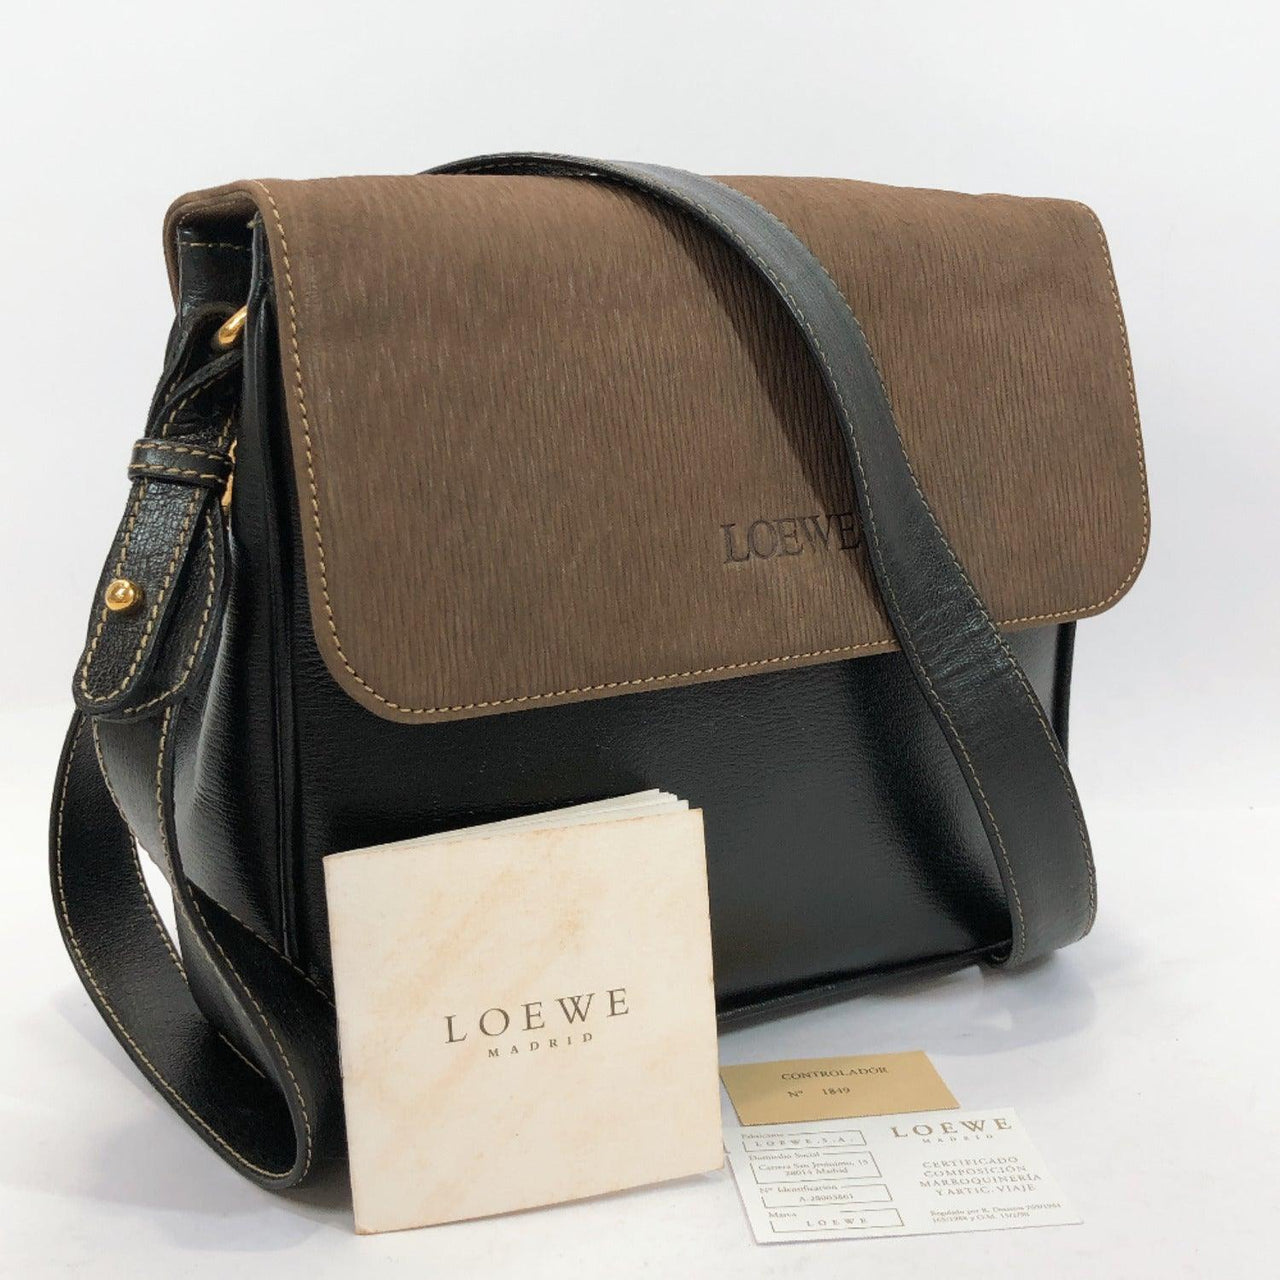 LOEWE Shoulder Bag vintage leather black Women Used